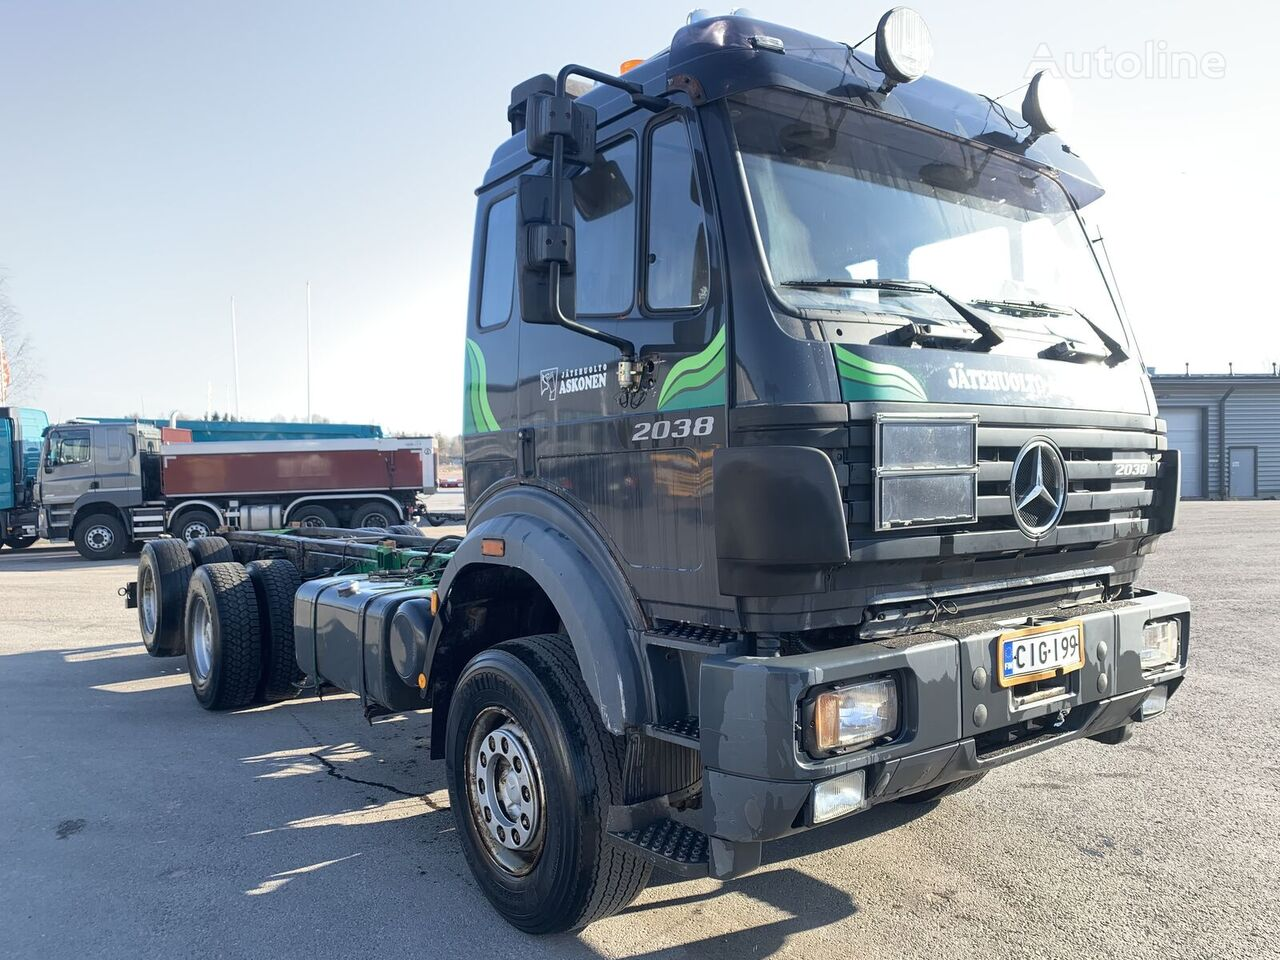 MERCEDES-BENZ 2538 6x2 V8 twin turbo chassis chassis truck